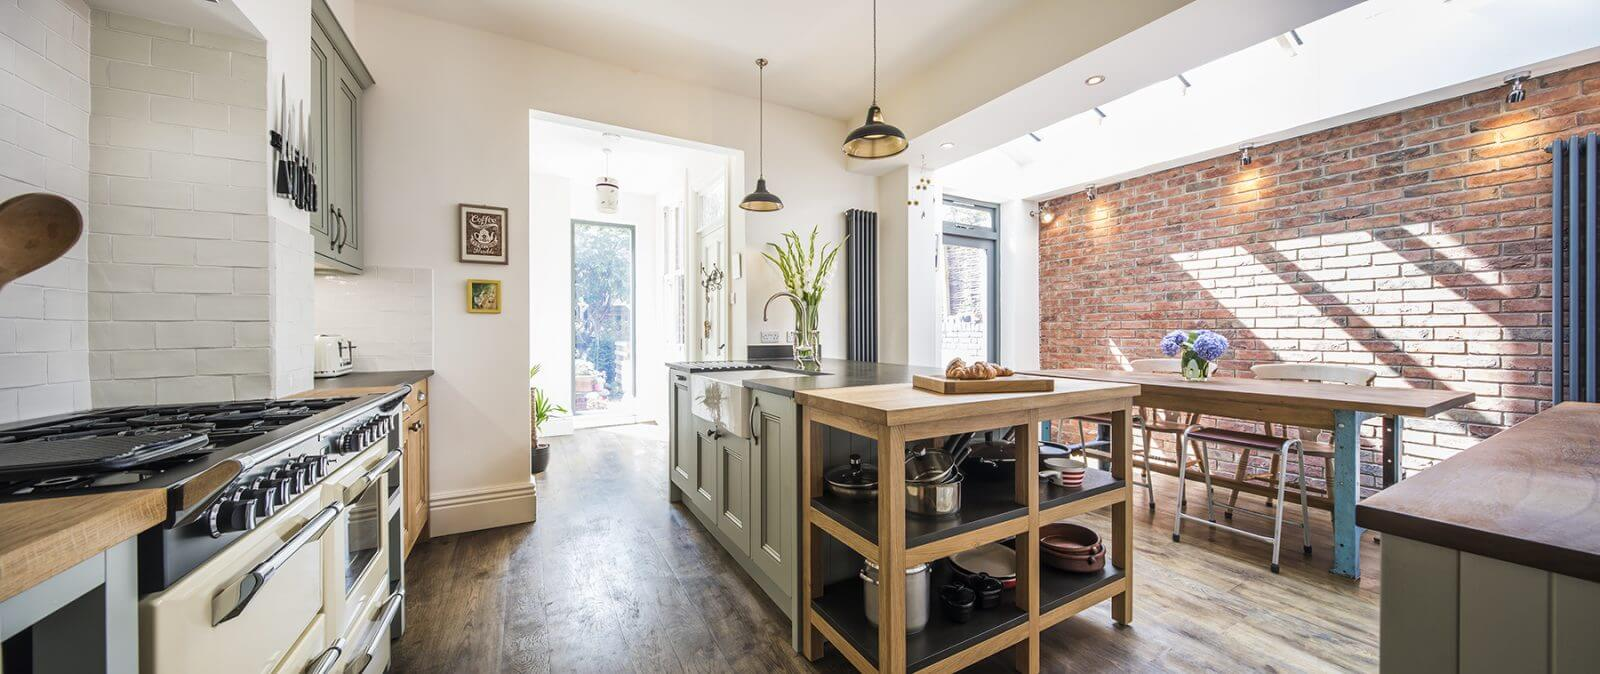 large victorian kitchen extenstion with large kitchen island and solid timber kitchen units and exposed brick wall